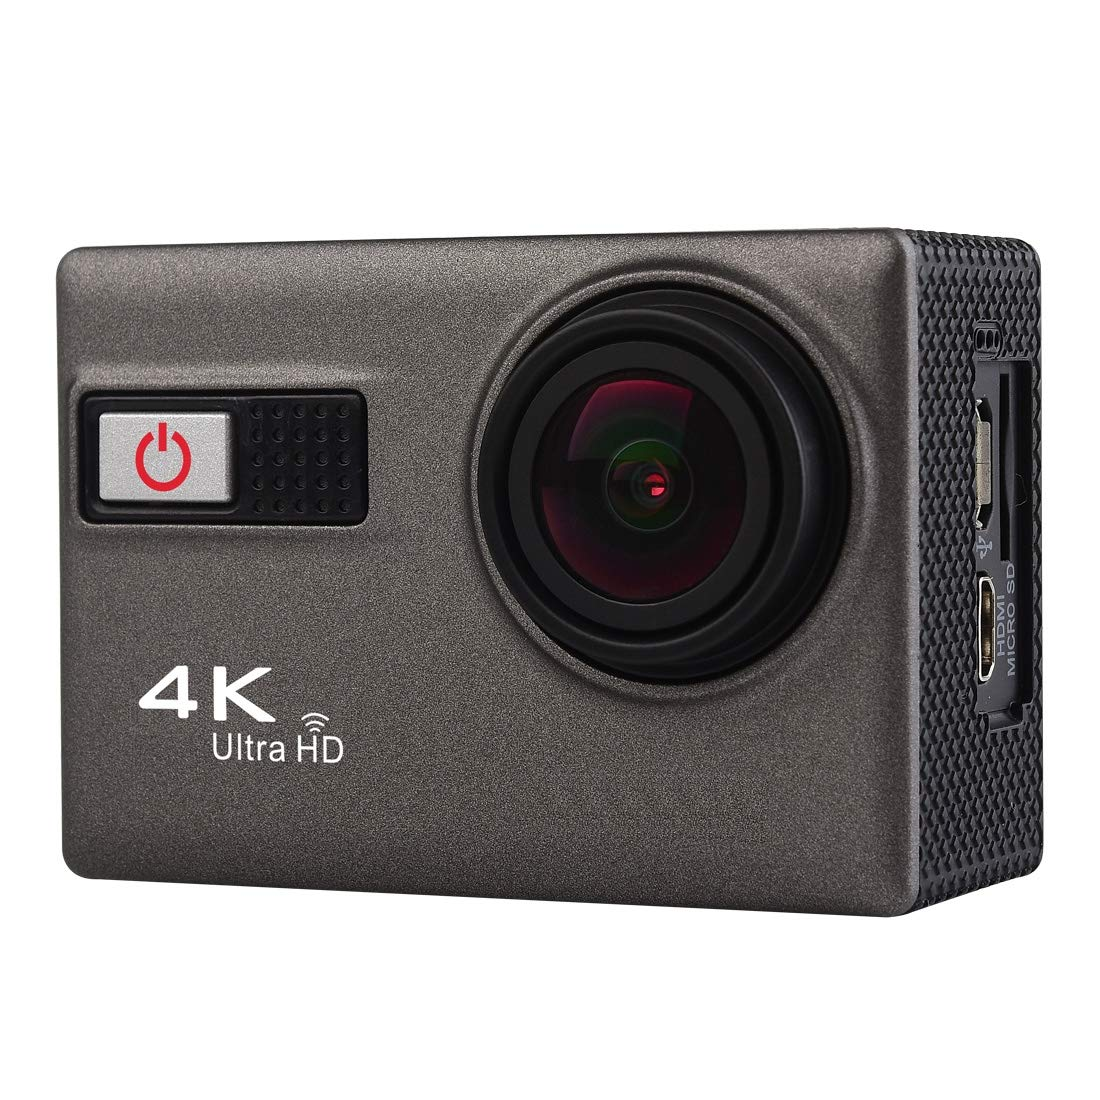 Camera Accessories F68 Portable 4K Ultra HD WiFi Waterproof Sport Camera, 2.0 inch Screen, Novatek 96660, 170 A+ Degrees Wide Angle Lens, Water Resistant Depth: 30m(Grey) (Color : Grey) by LUQIN